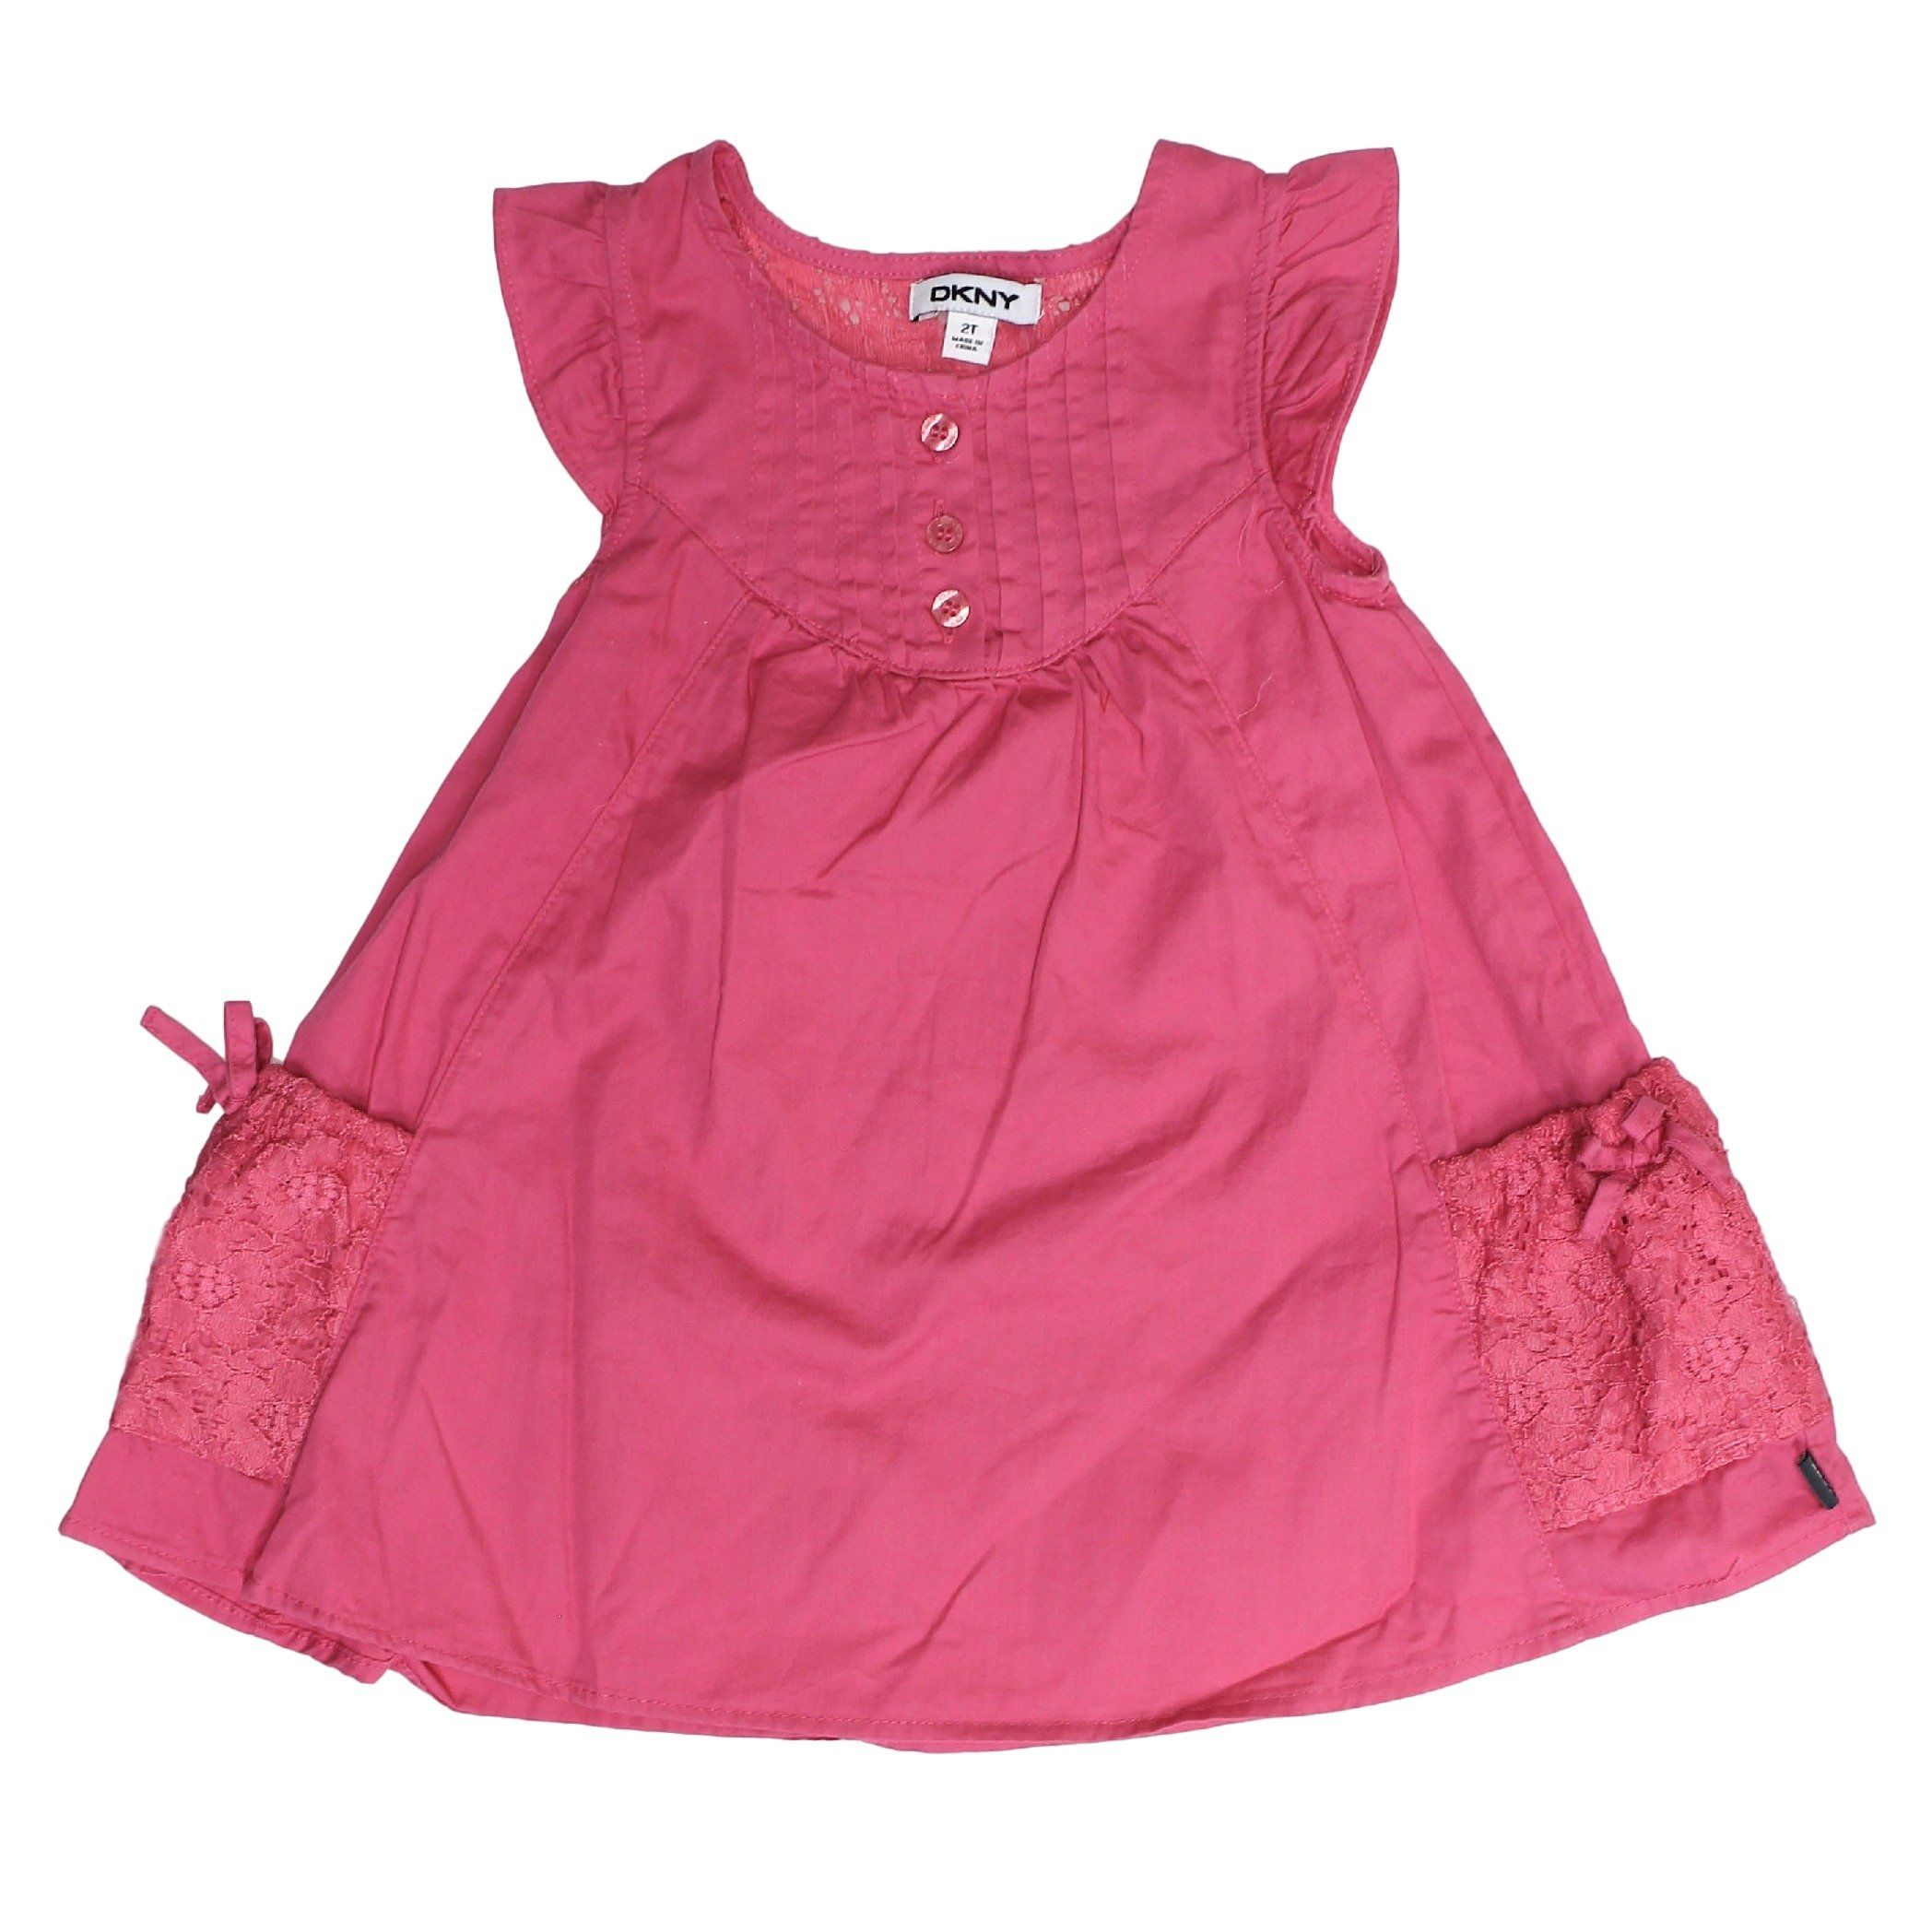 Dkny Sleeveless Dress For Girls 4t Pink Content Varies By Style See Description For Details Regular Fit Dresses Girls Dresses Clothes [ 2096 x 2096 Pixel ]